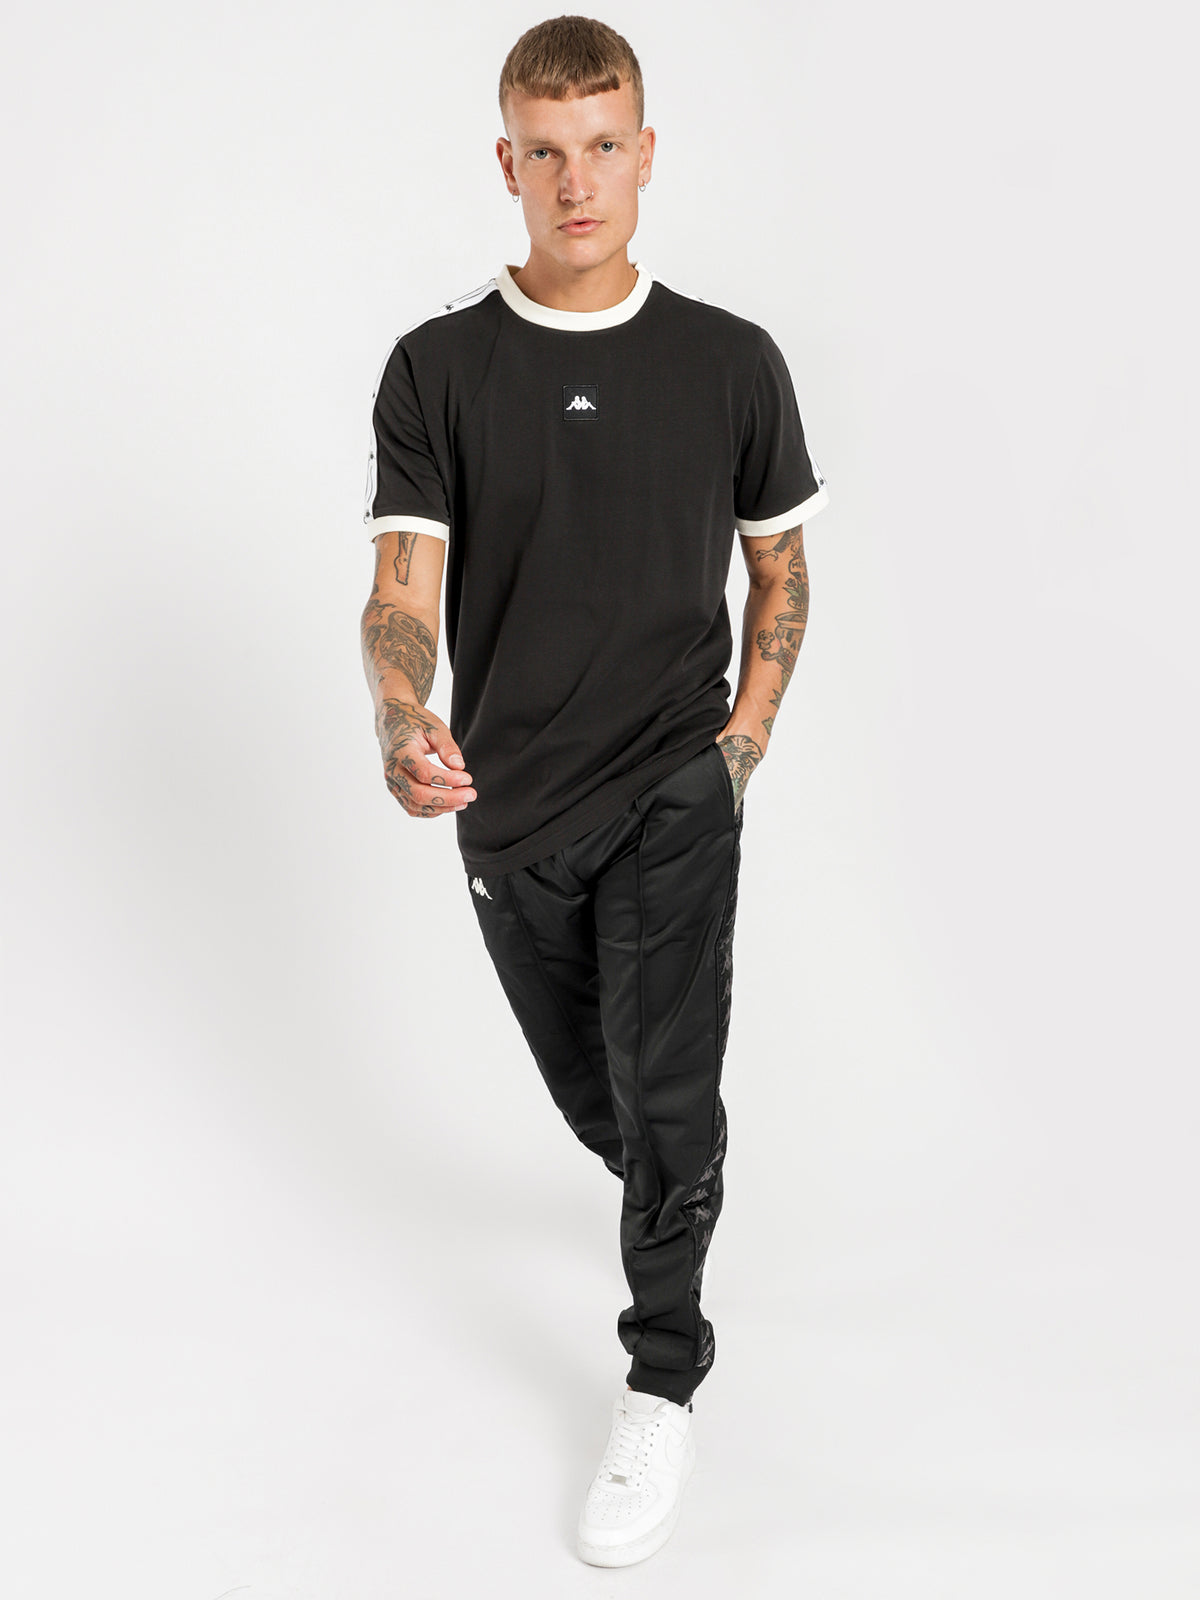 Authentic JPN Cymino T-Shirt in Black